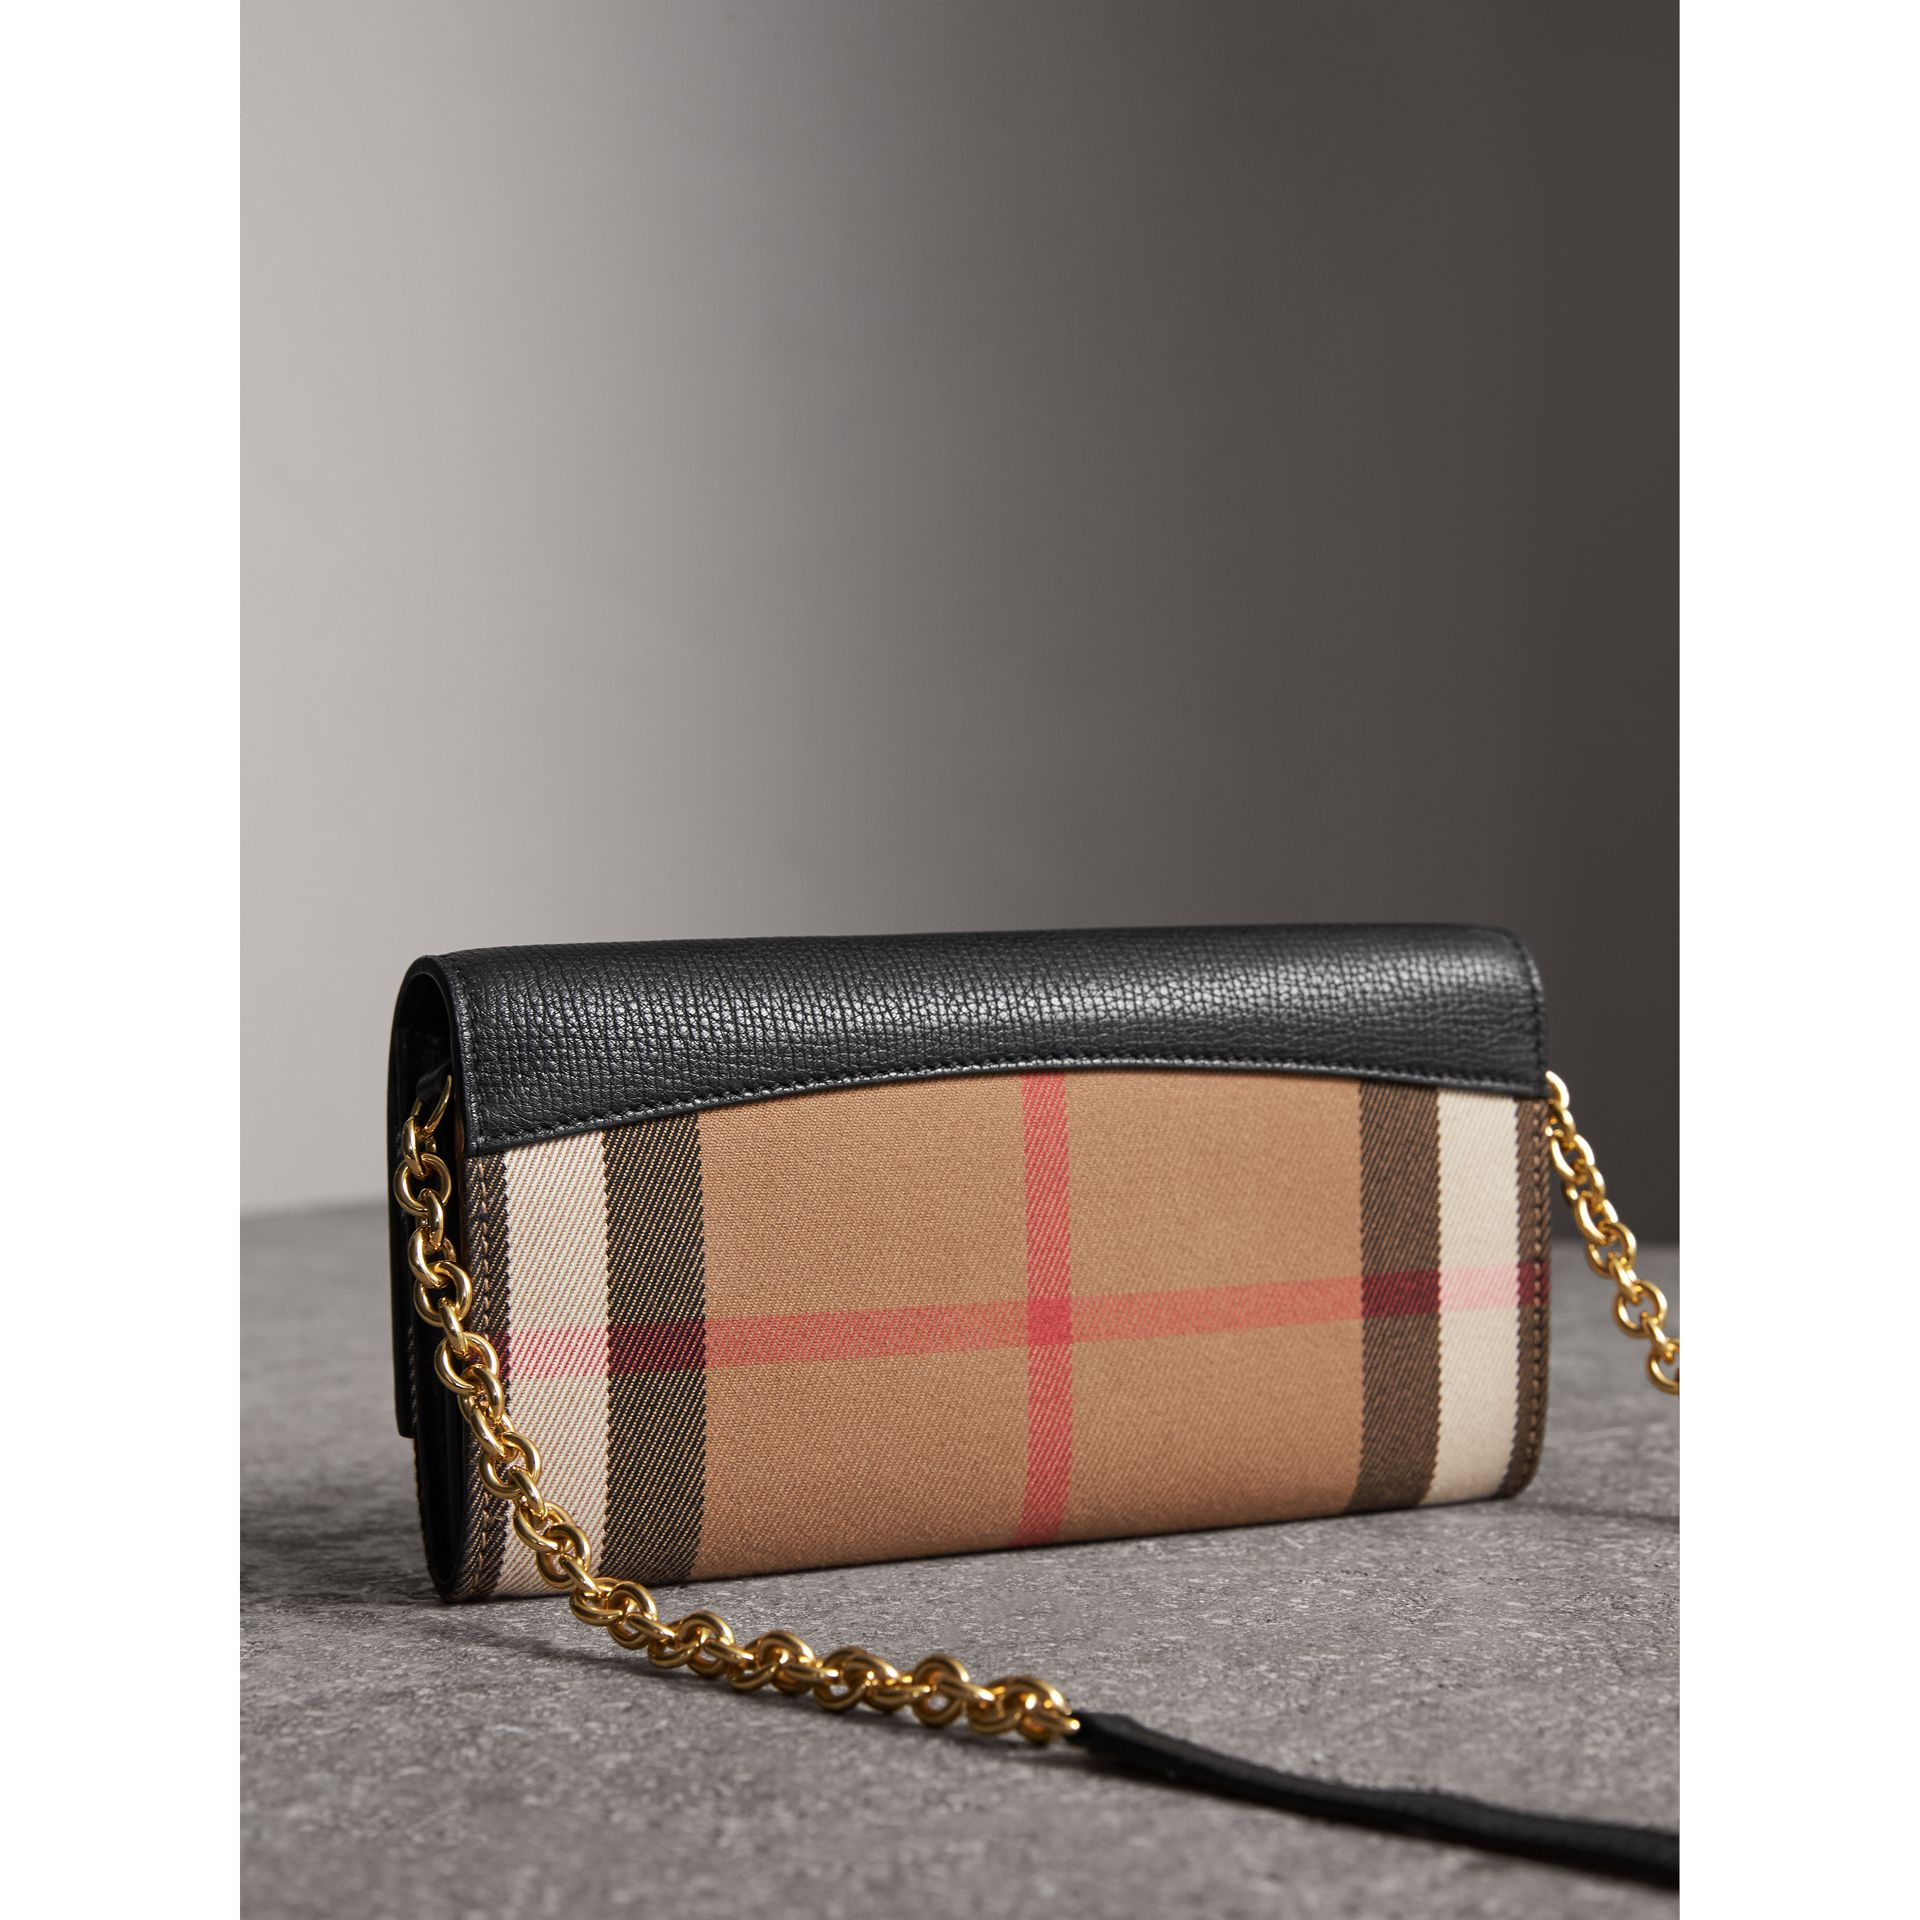 House Check and Leather Wallet with Chain in Black - Women | Burberry Australia - gallery image 5